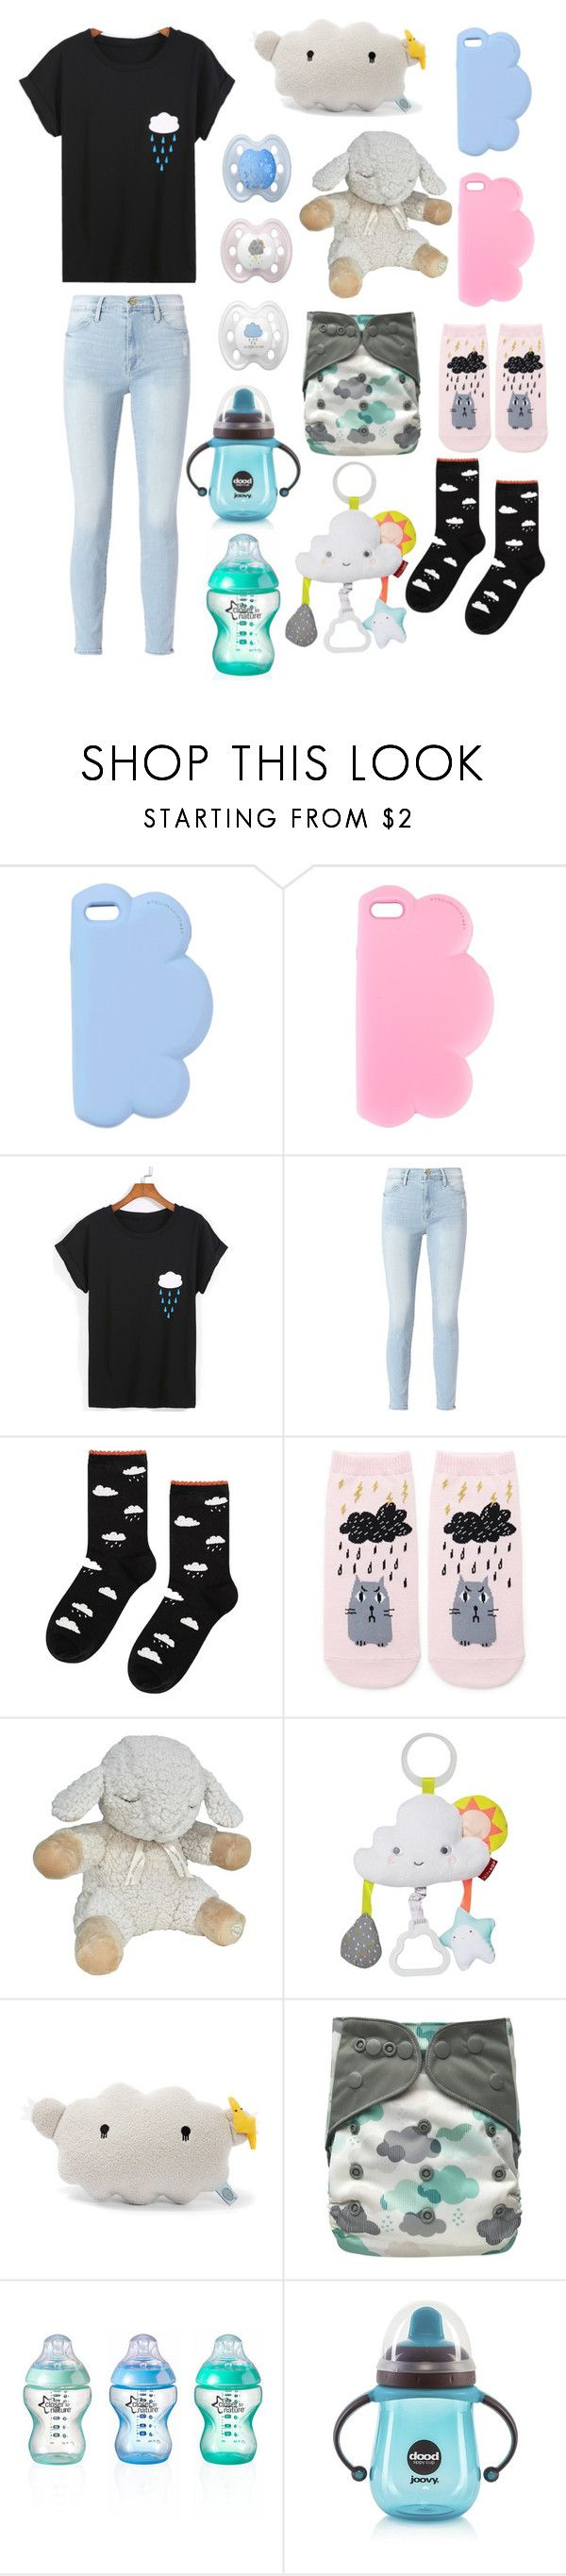 """Clouds (age regression, cglre)"" by transboyfanboy ❤ liked on Polyvore featuring STELLA McCARTNEY, Frame, Hansel from Basel, Forever 21, Cloud B, John Lewis and Joovy"